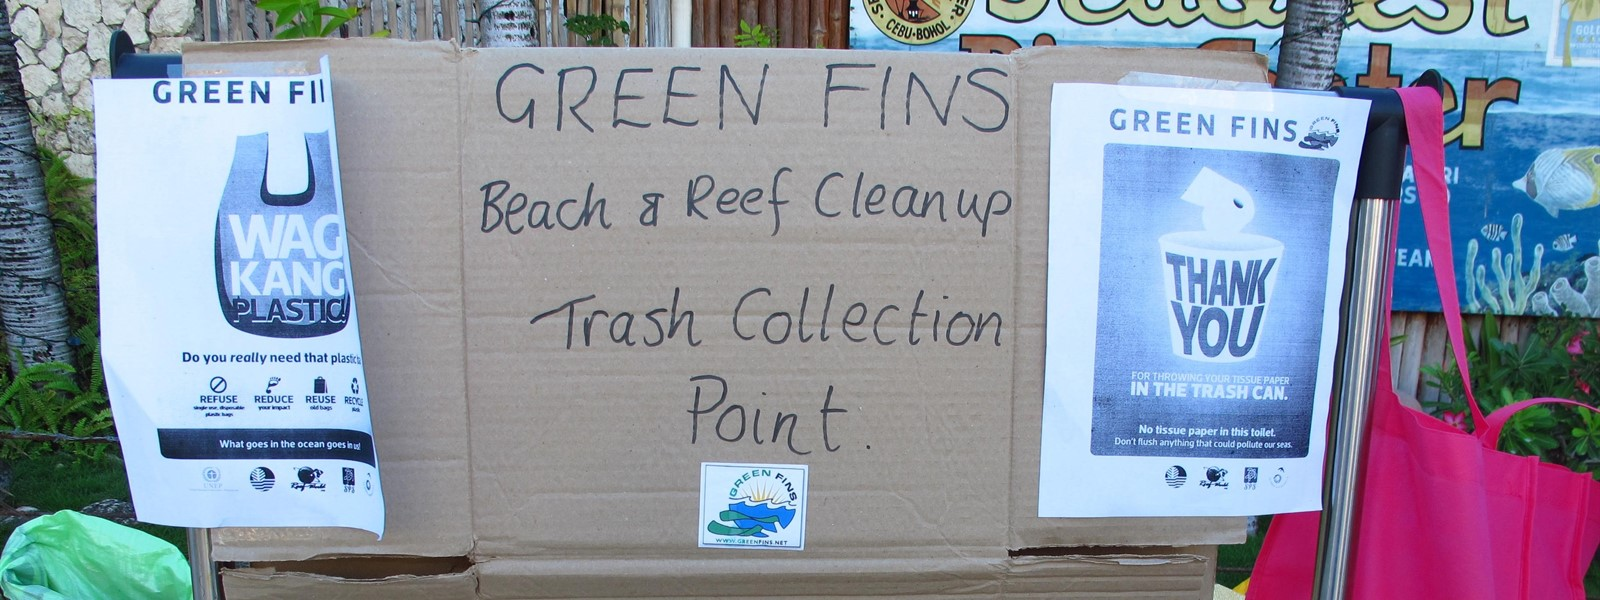 Picture of a sign for the trash collection point during the Green Fins clean-up event.